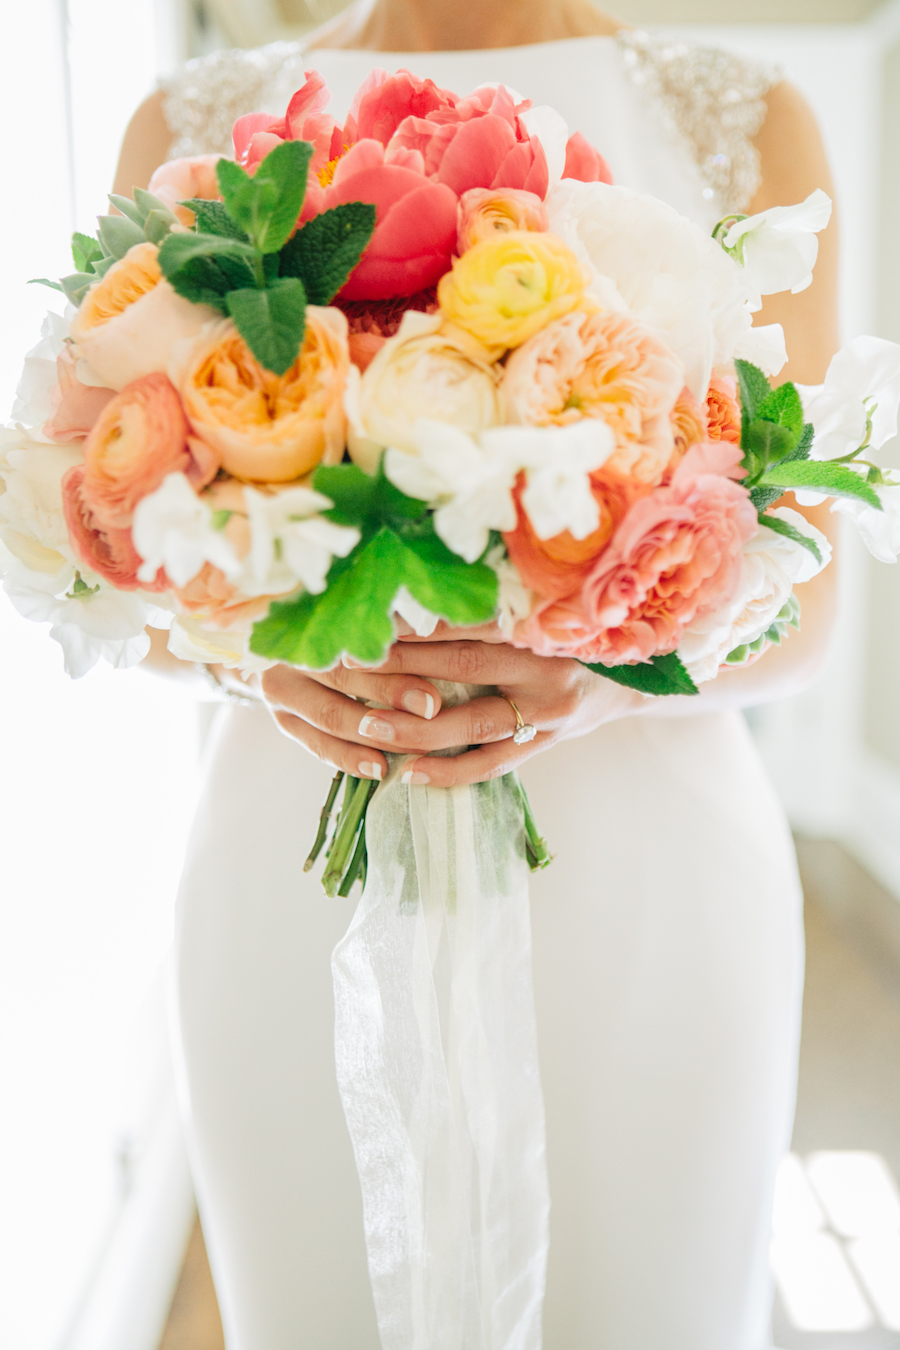 ROQUE Events - Amber and Vince - Courtney Lindberg Photography - Napa Valley Wedding14.JPG